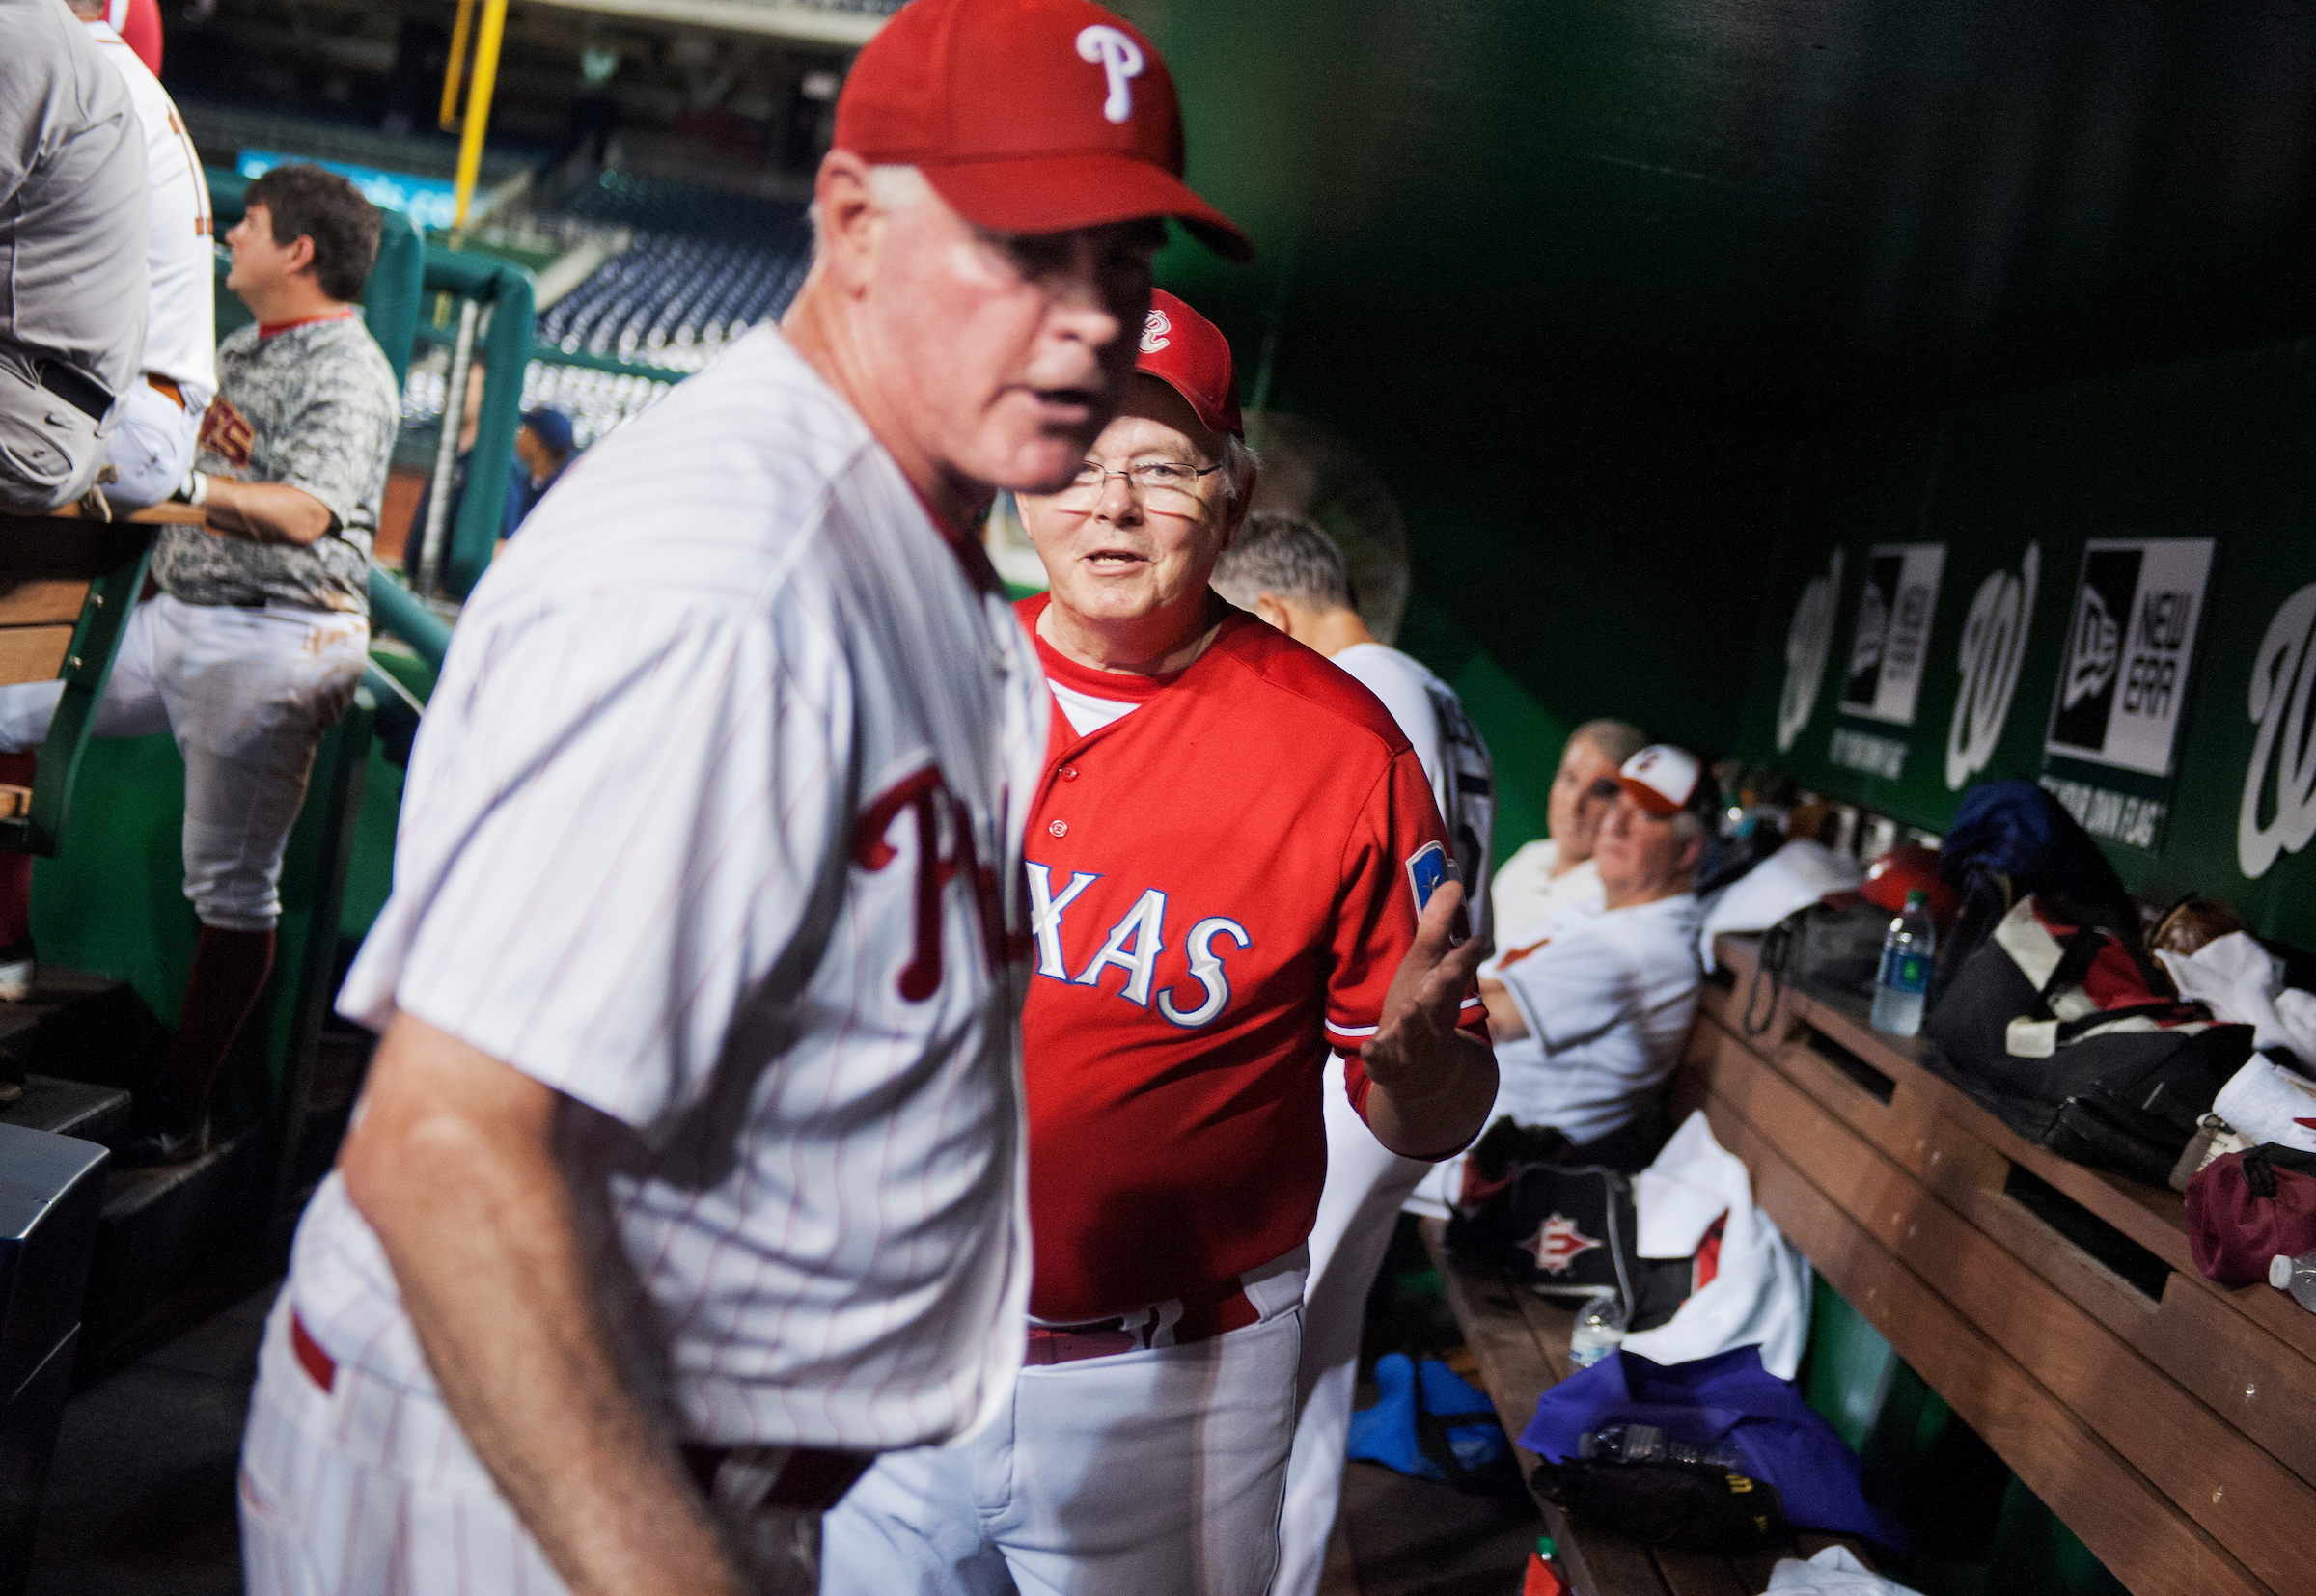 Coach Joe Barton, R-Texas, tries to calm down Rep. Patrick Meehan, R-Pa., in the Republican dugout after Meehan was pulled from the mound during the 53rd Congressional Baseball Game from the Republican team dugout in Nationals Park, June 25, 2014. The Democrats prevailed over the Republicans 15-6 in a rain shortened game. (Tom Williams/CQ Roll Call)